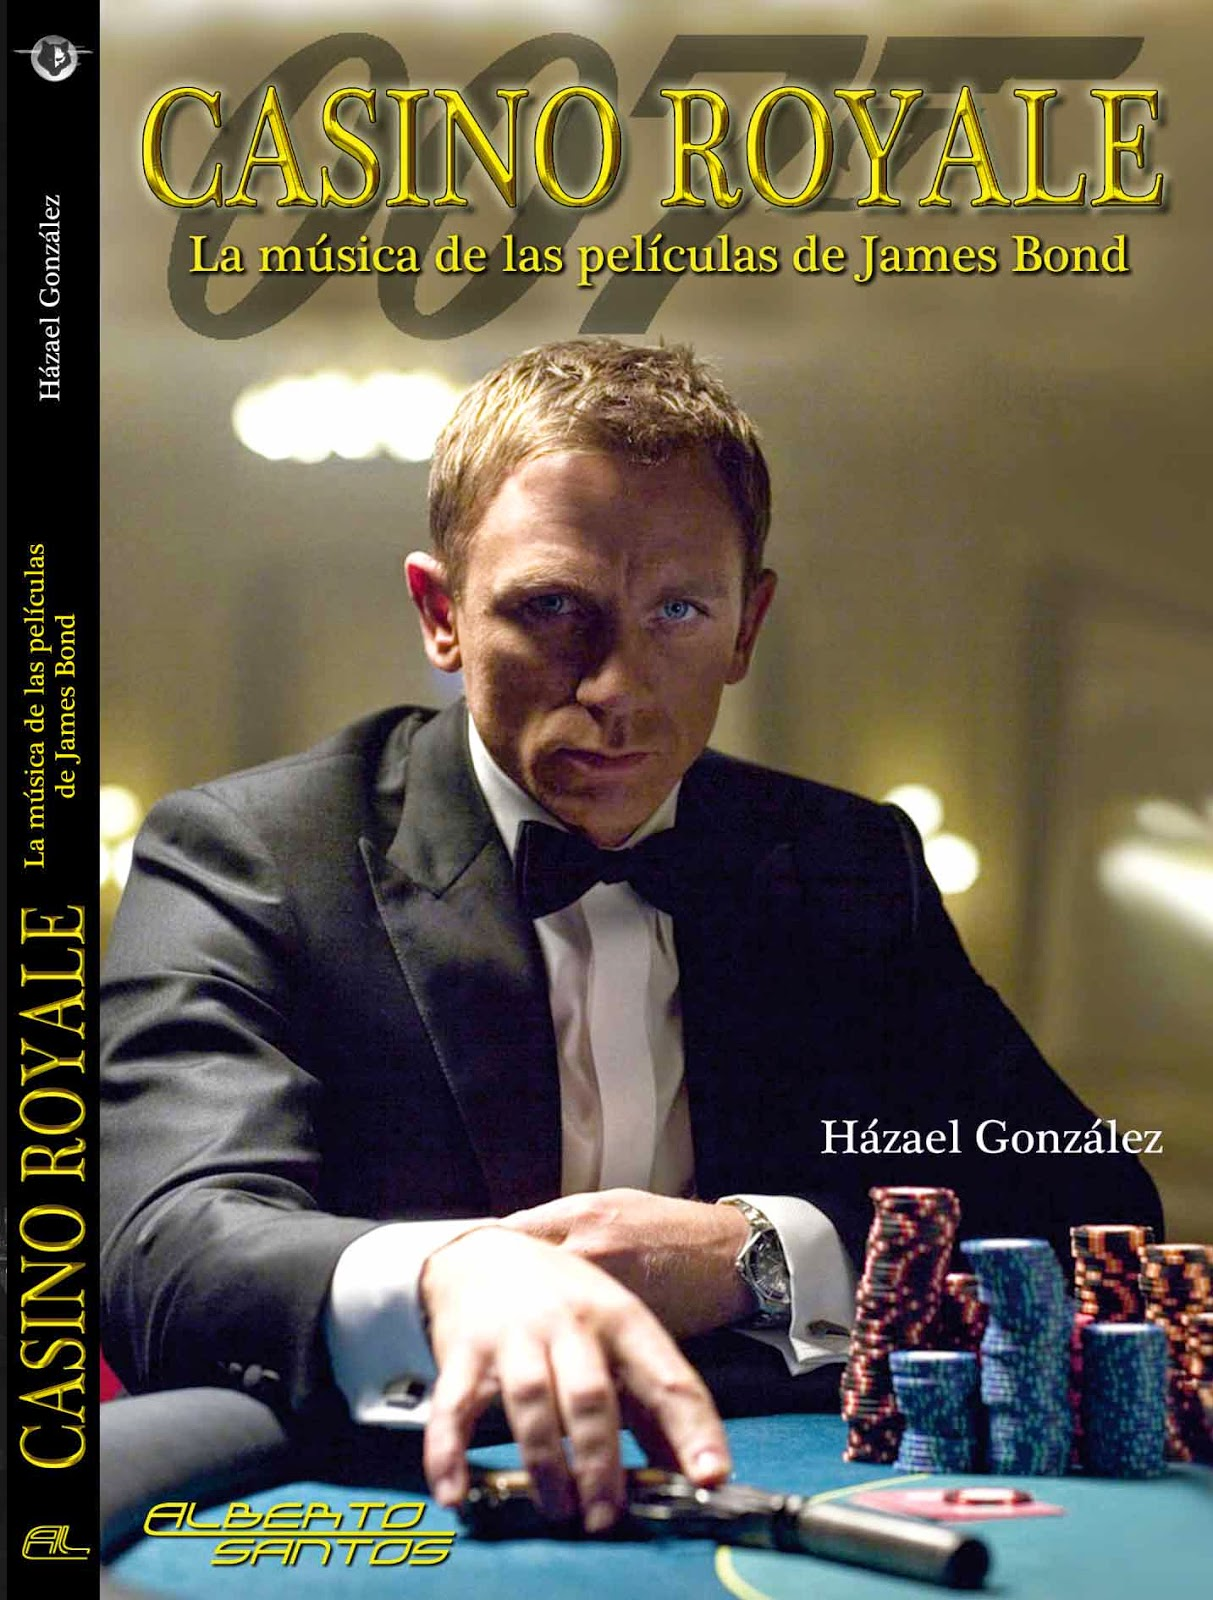 http://www.albertosantoseditor.com/shop/article_78/Casino-Royale.html